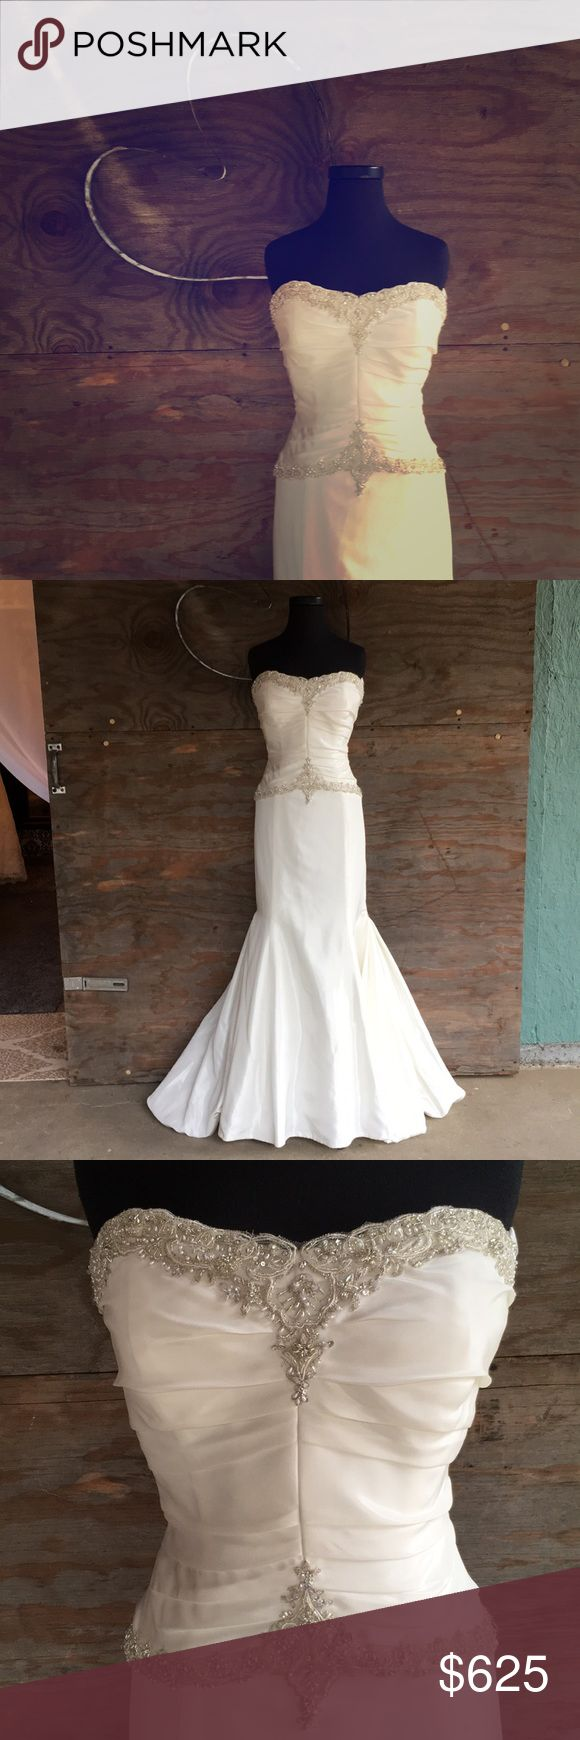 🆕 Alfred Angelo style 2025 Stunning ivory taffeta mermaid gown with pearl and crystal detailing along bodice and trumpet fit. Classic straight hemline in the front with a bubble hemline along train for added drama. Comes with spaghetti straps. Unaltered. Alfred Angelo Dresses Wedding